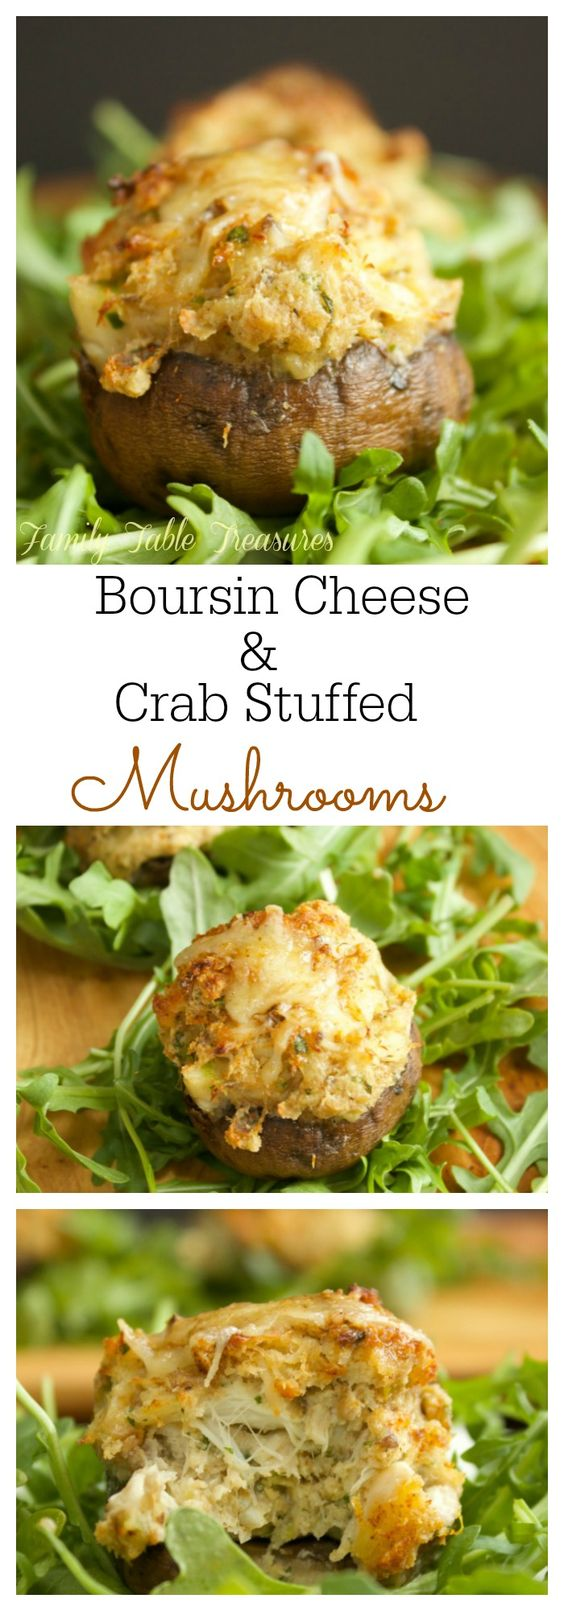 Stuffed Mushrooms | Recipe | Boursin Cheese, Crab Stuffed Mushrooms ...